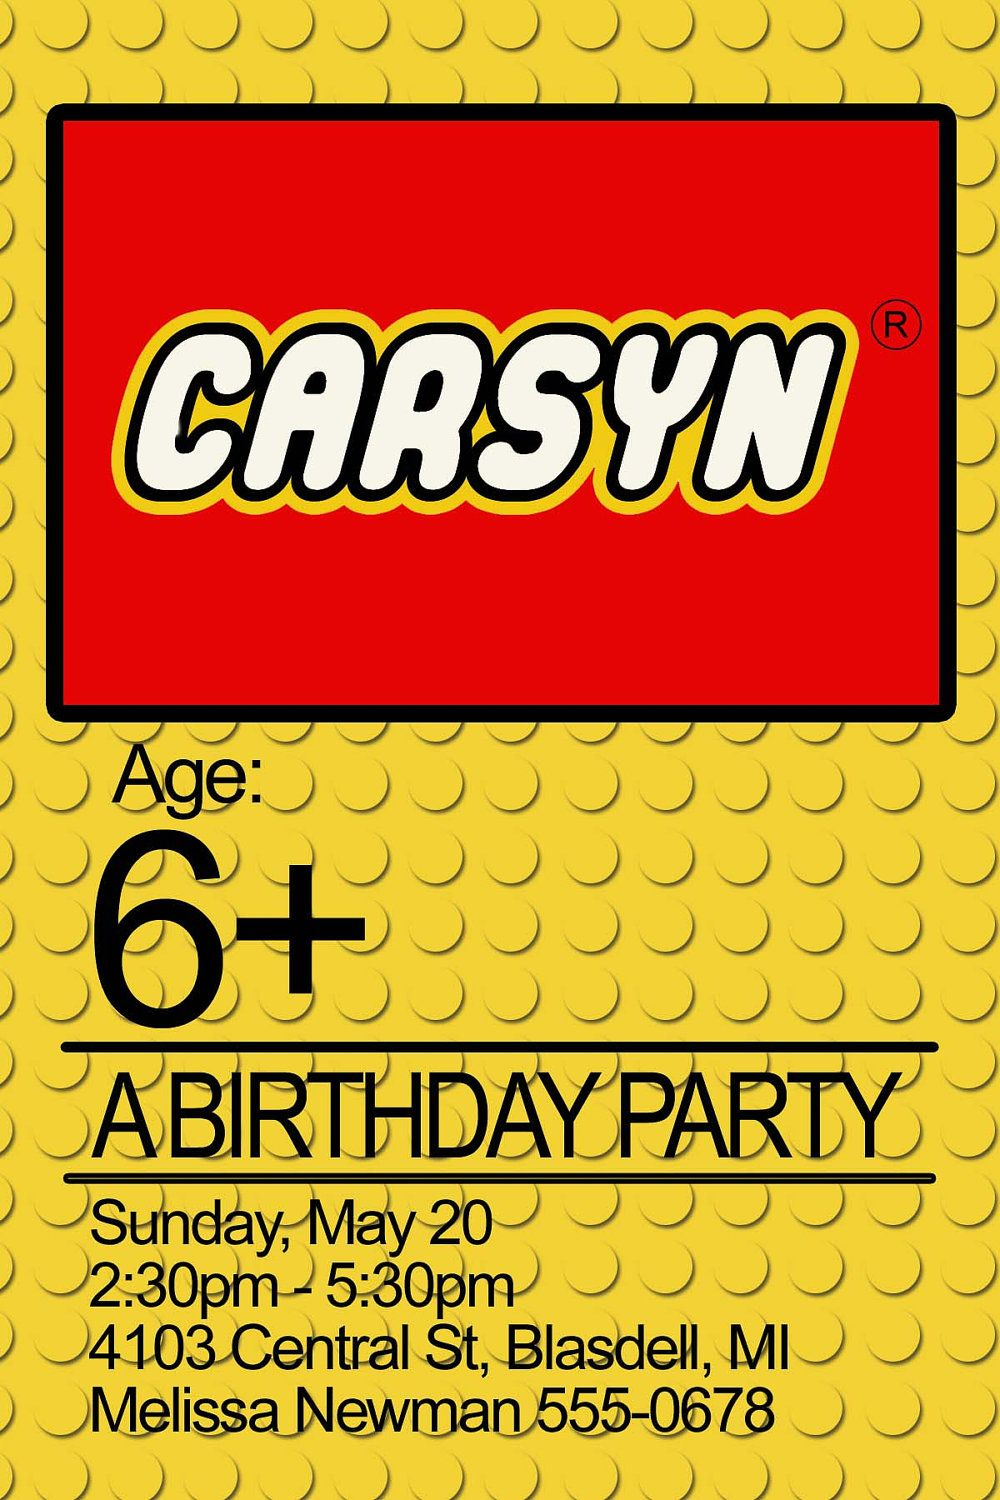 graphic about Lego Printable Coupon titled lego birthday bash invitation - PRINTABLE: buy this